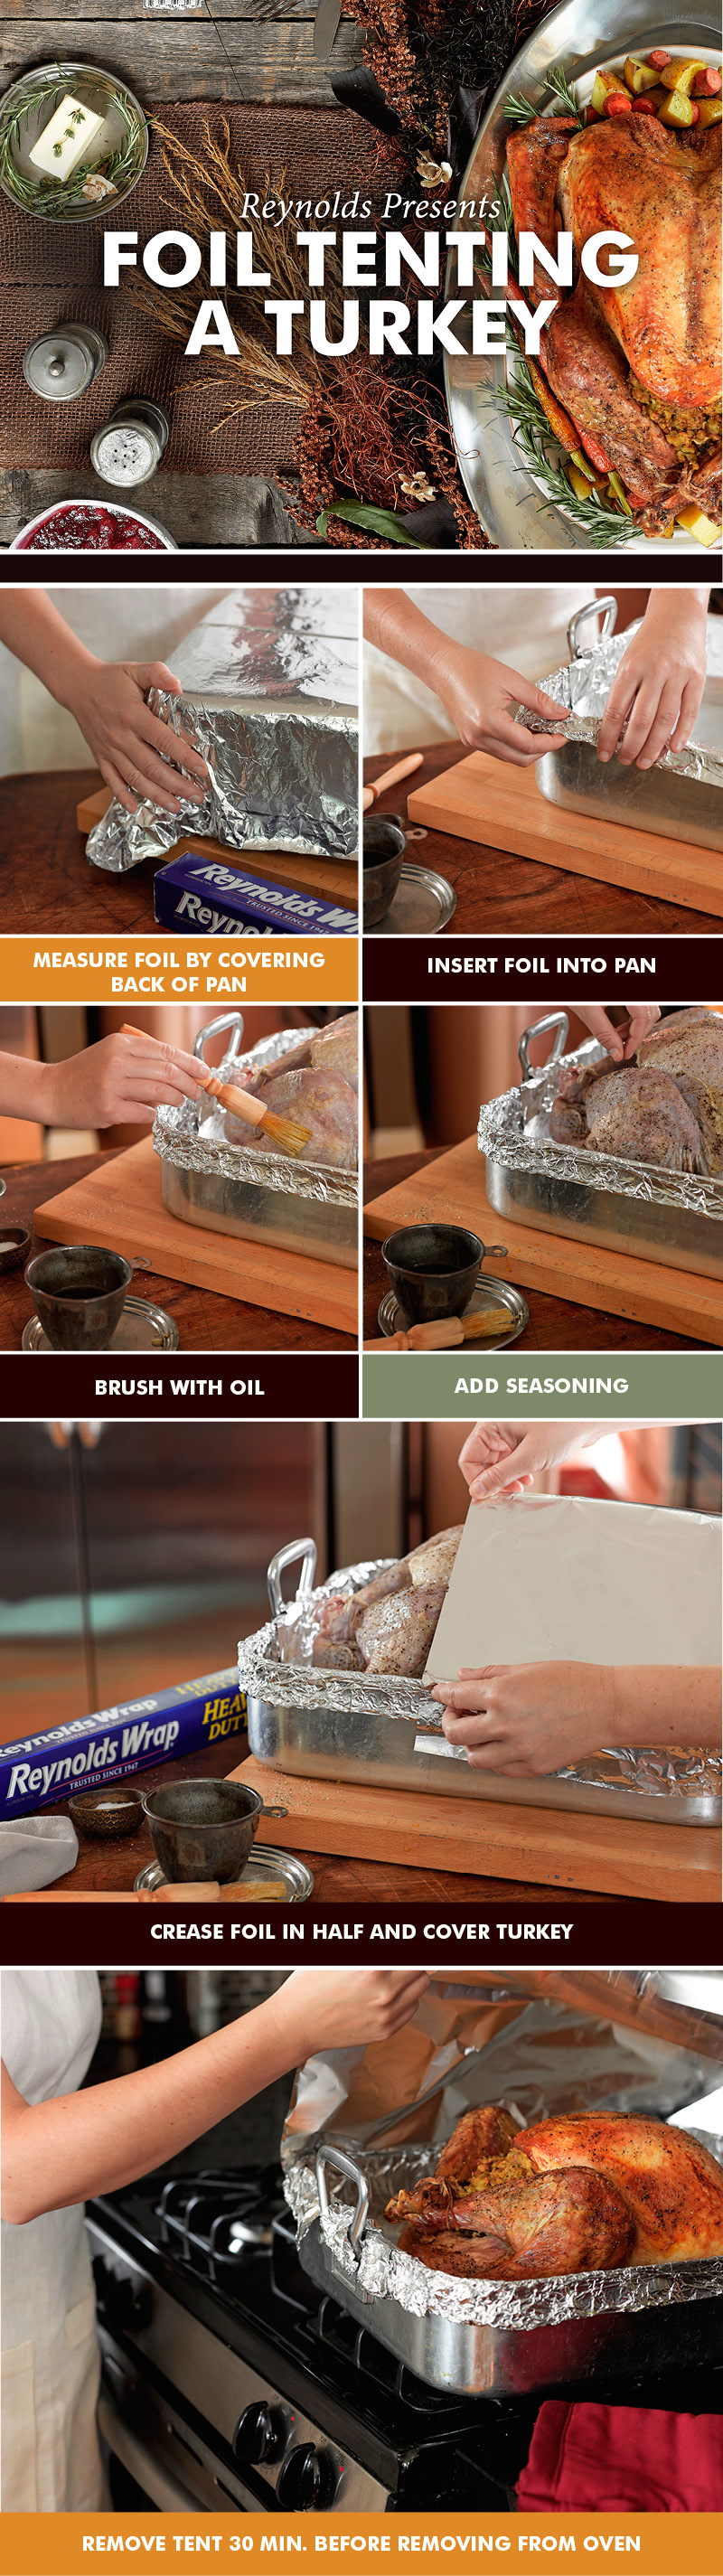 How to get a perfectly browned Thanksgiving turkey Use an aluminum foil turkey tent! & How to get a perfectly browned Thanksgiving turkey: Use an ...